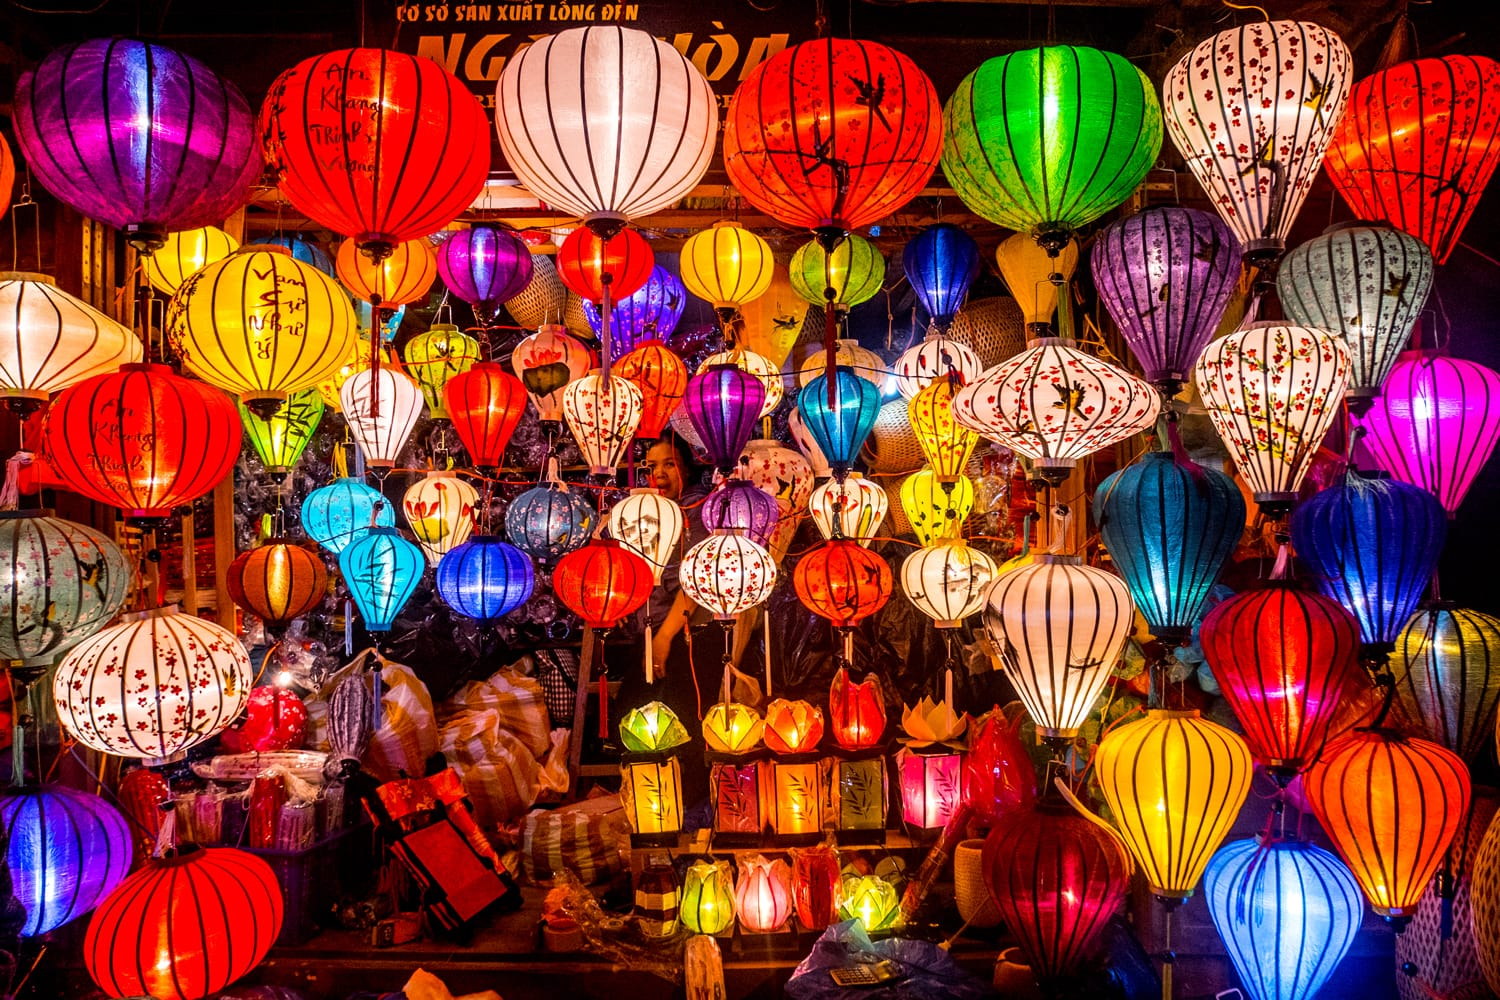 Colorful lanterns spread light on the old street of Hoi An Ancient Town